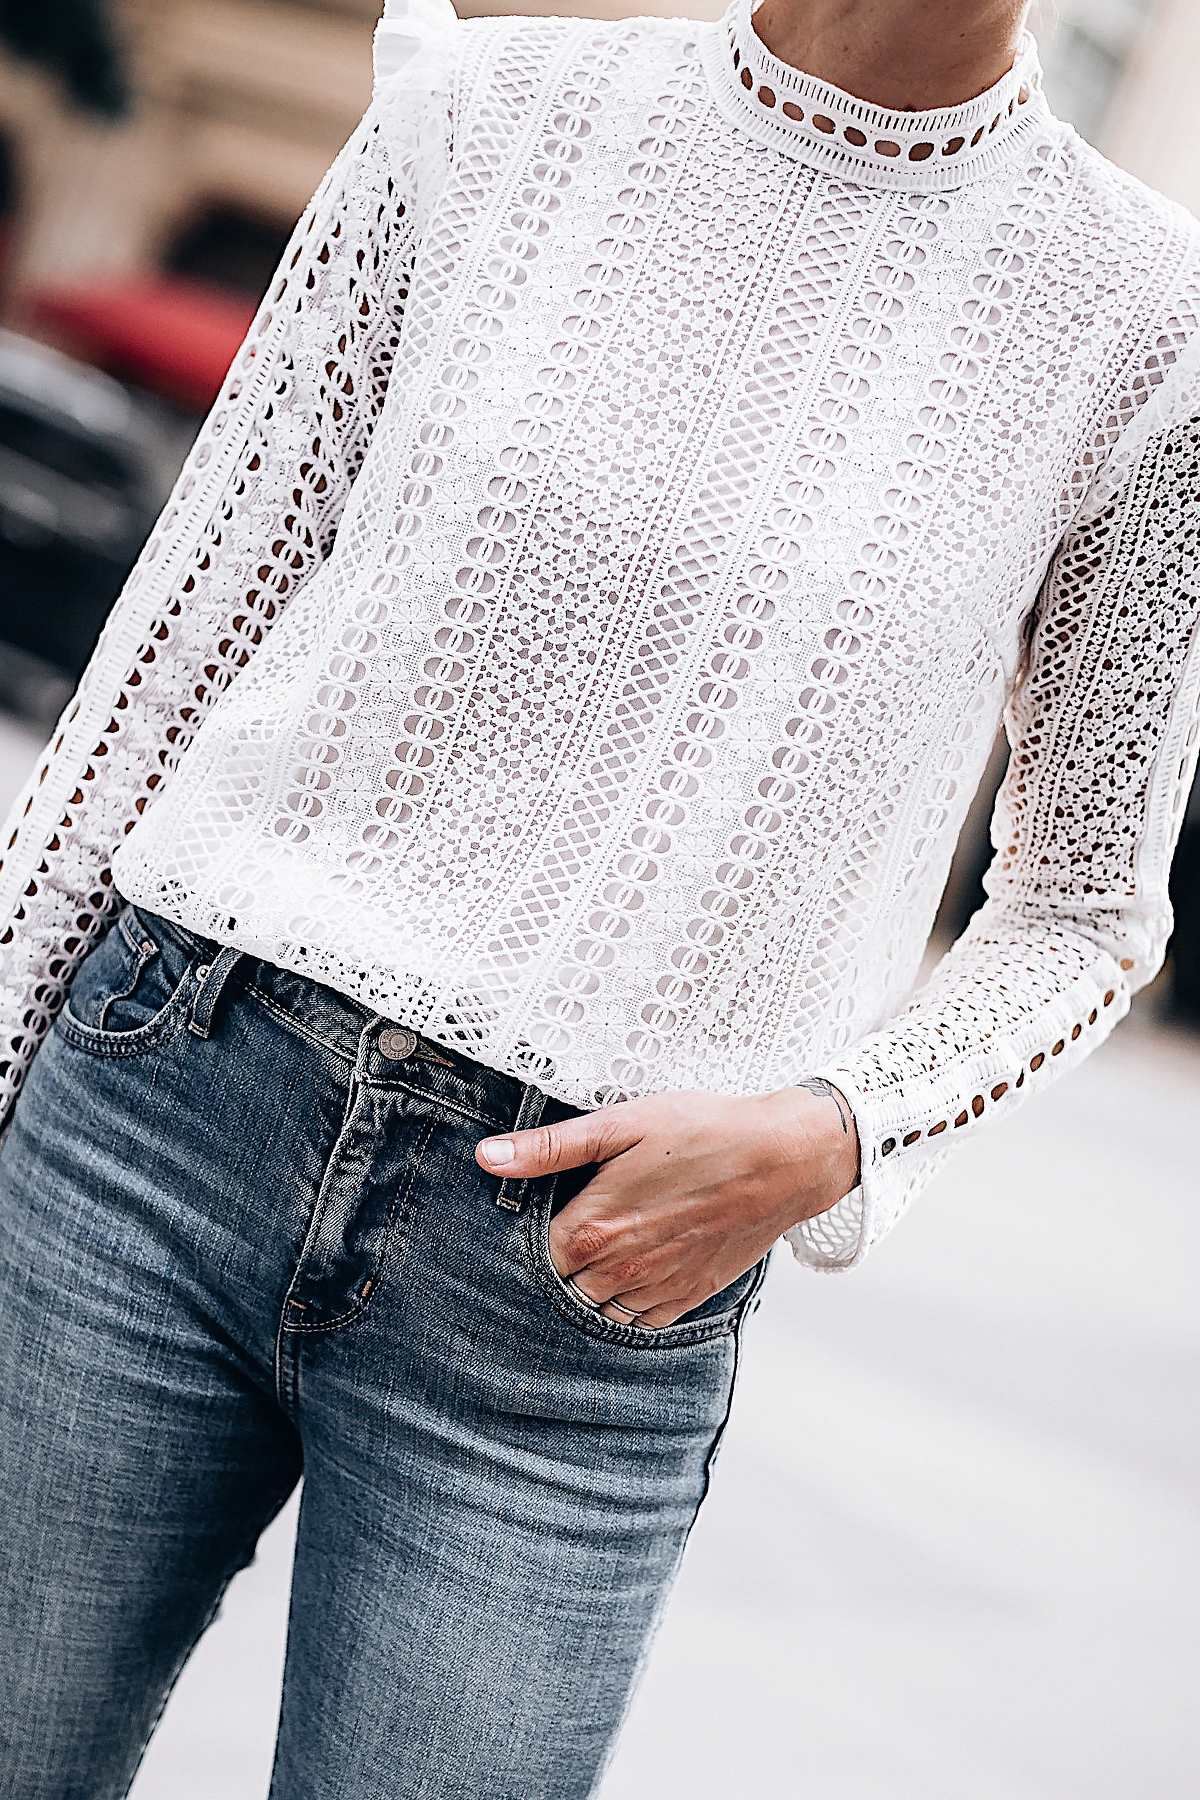 Woman Wearing Fashion Jackson Bloomingdales AQUA White Lace Ruffle Top Skinny Jeans Fashion Jackson San Diego Fashion Blogger Street Style